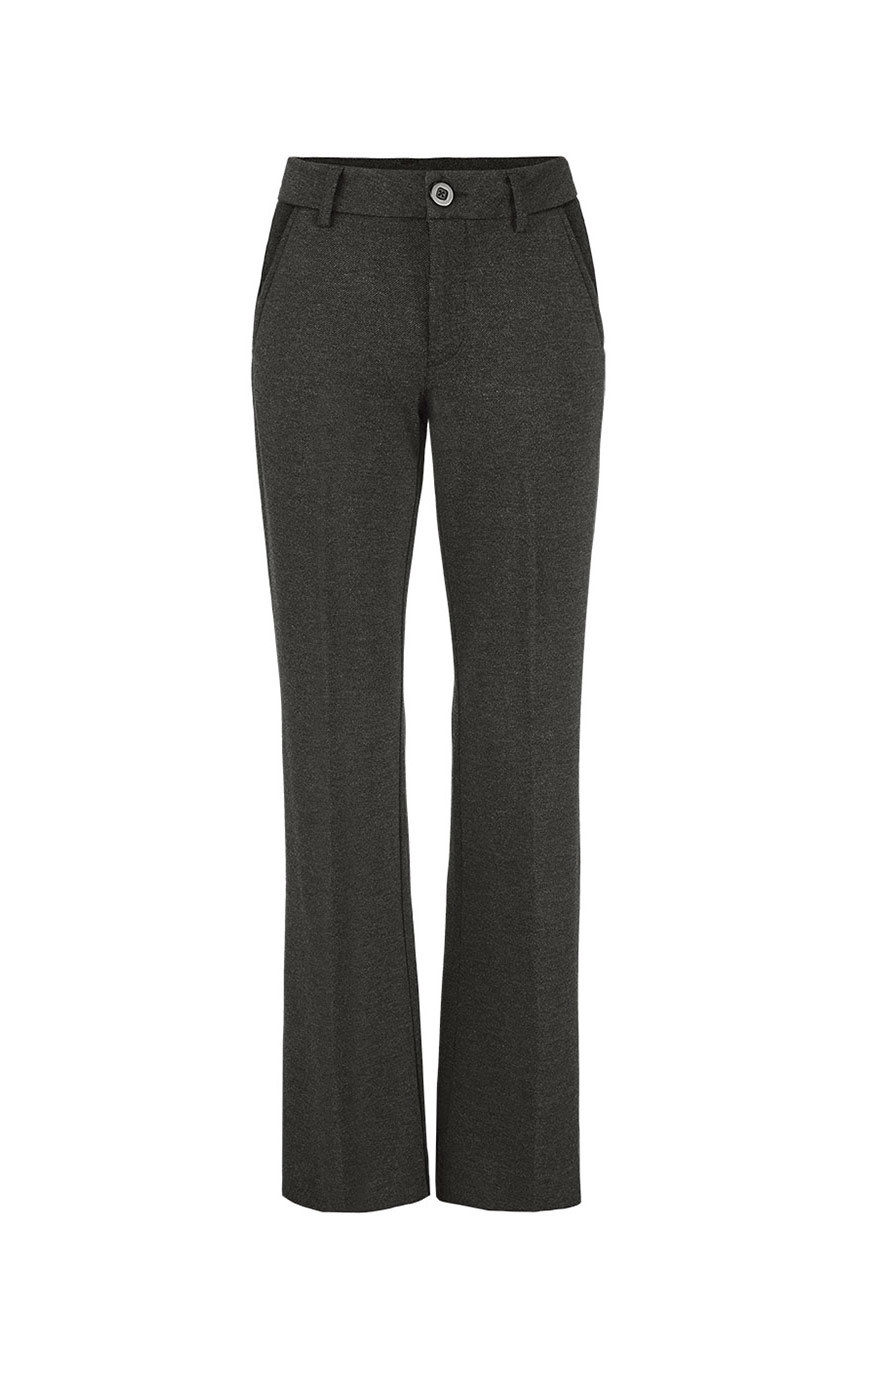 cabi's Promotion Trouser